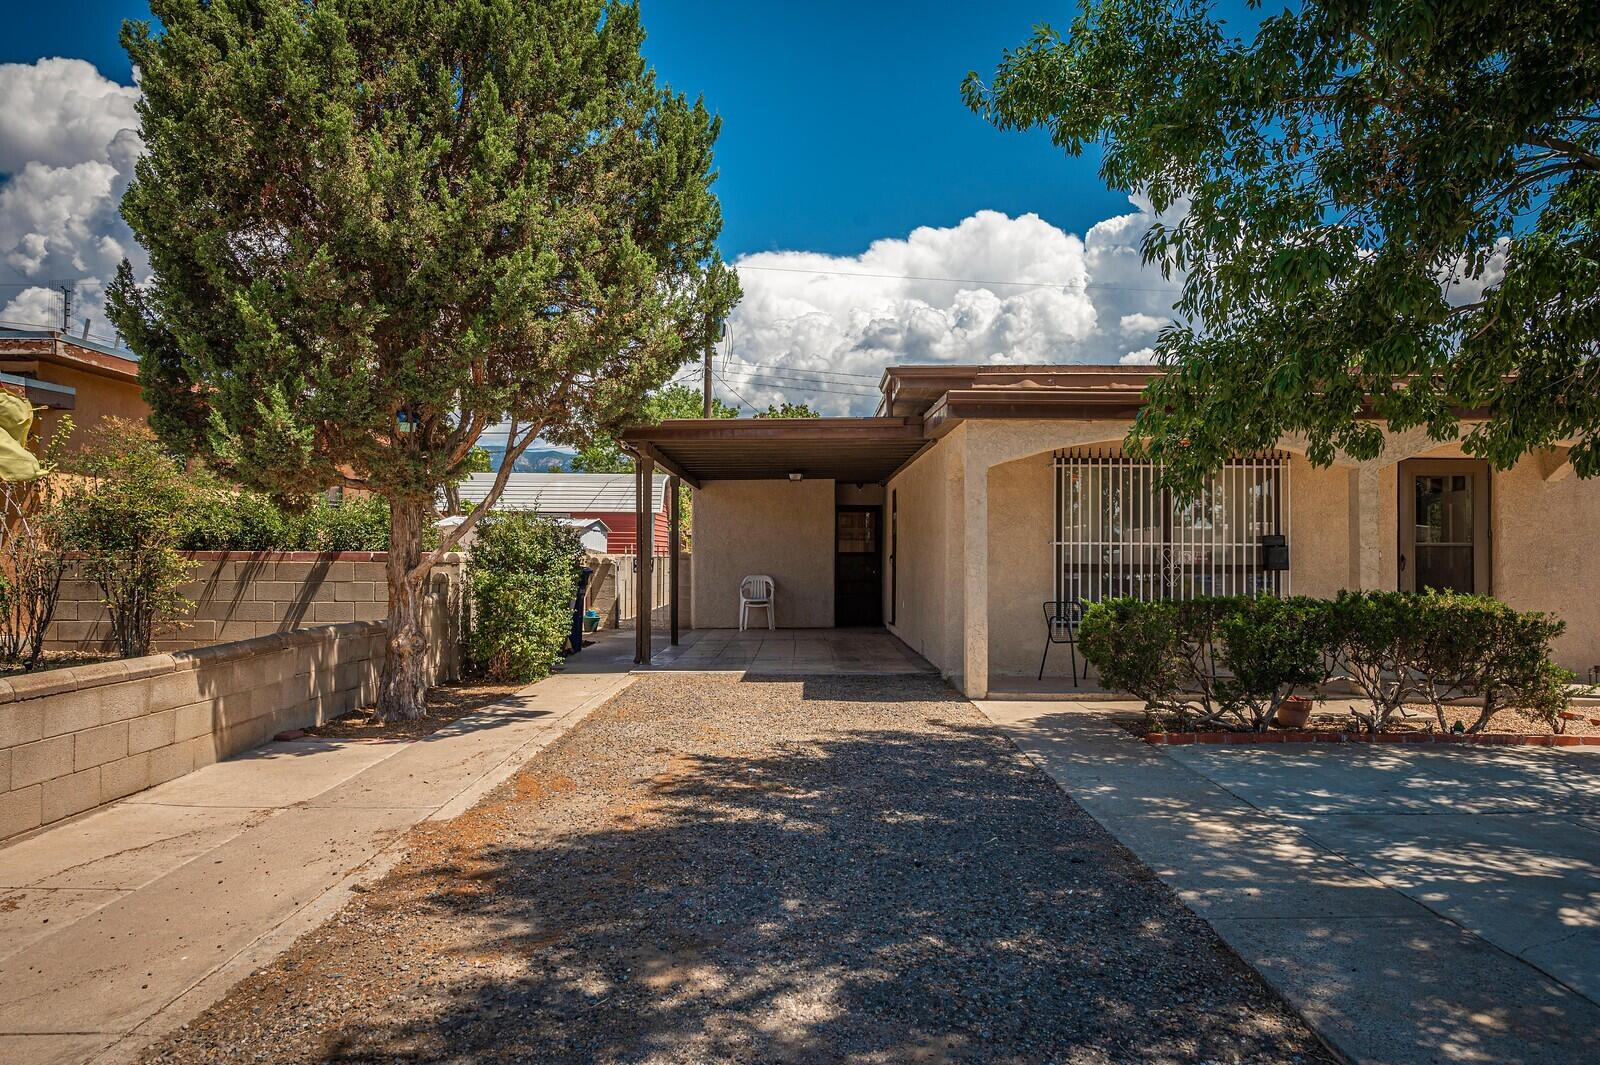 This lovely pueblo style home is ready for a new owner!The house features a spacious living room, cozy wood burning fireplace, breakfast nook, a formal dinning area and a sunroom for hobbies or entertainment.